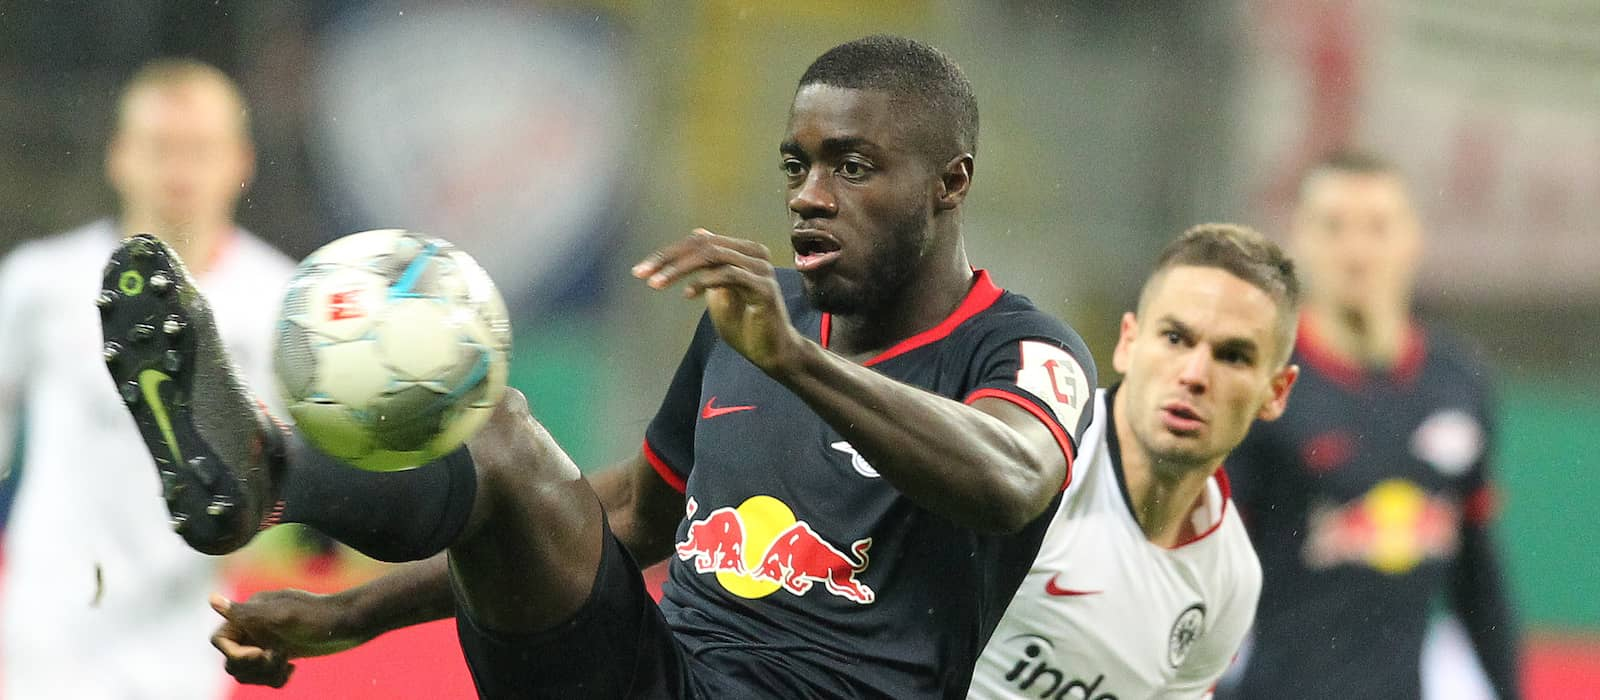 Dayot Upamecano admits speaking with clubs amid Manchester United interest